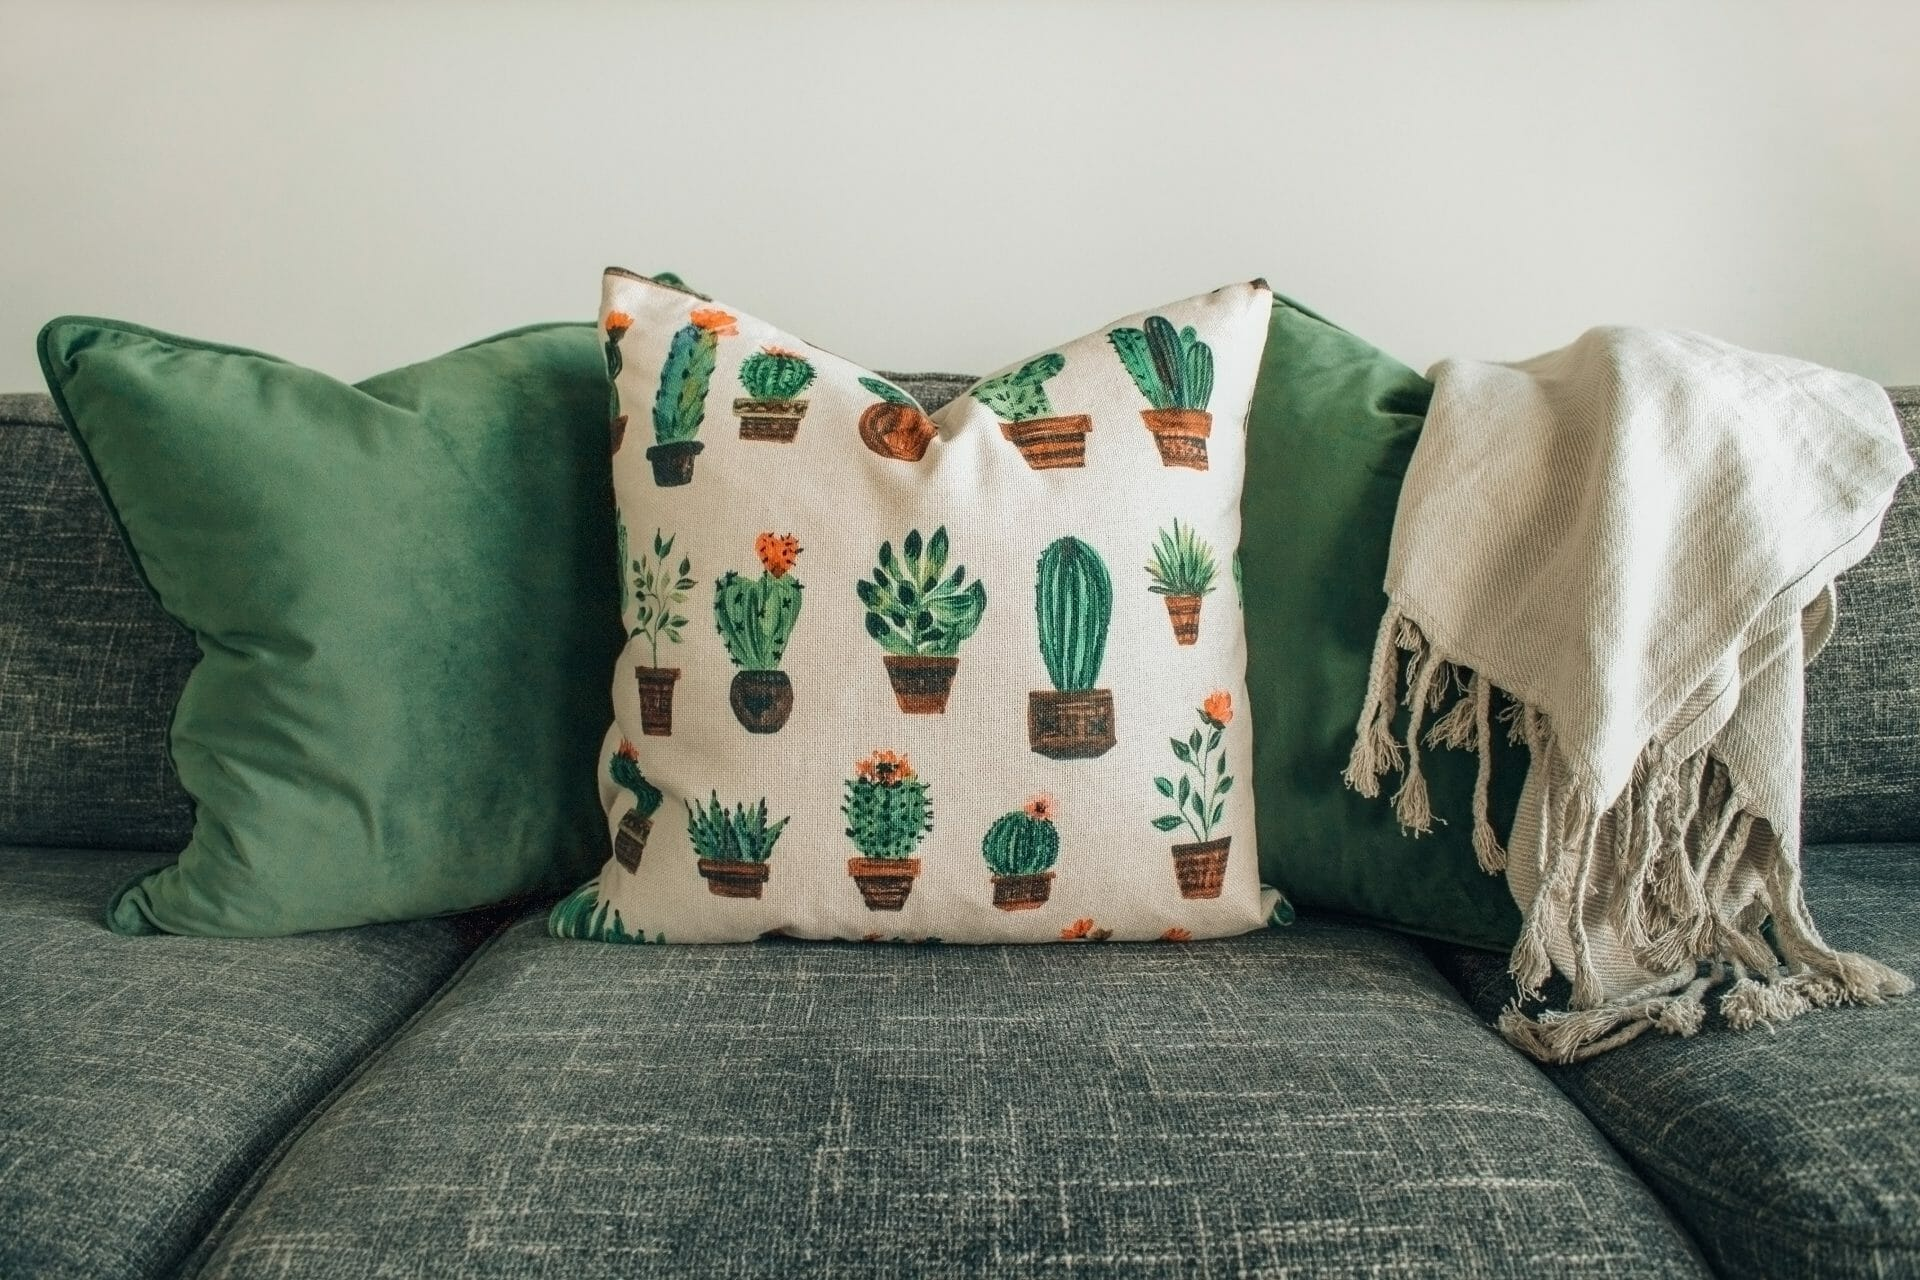 Picture of sofa with cactus pillow for Real Estate News for Investors Podcast Episode #791